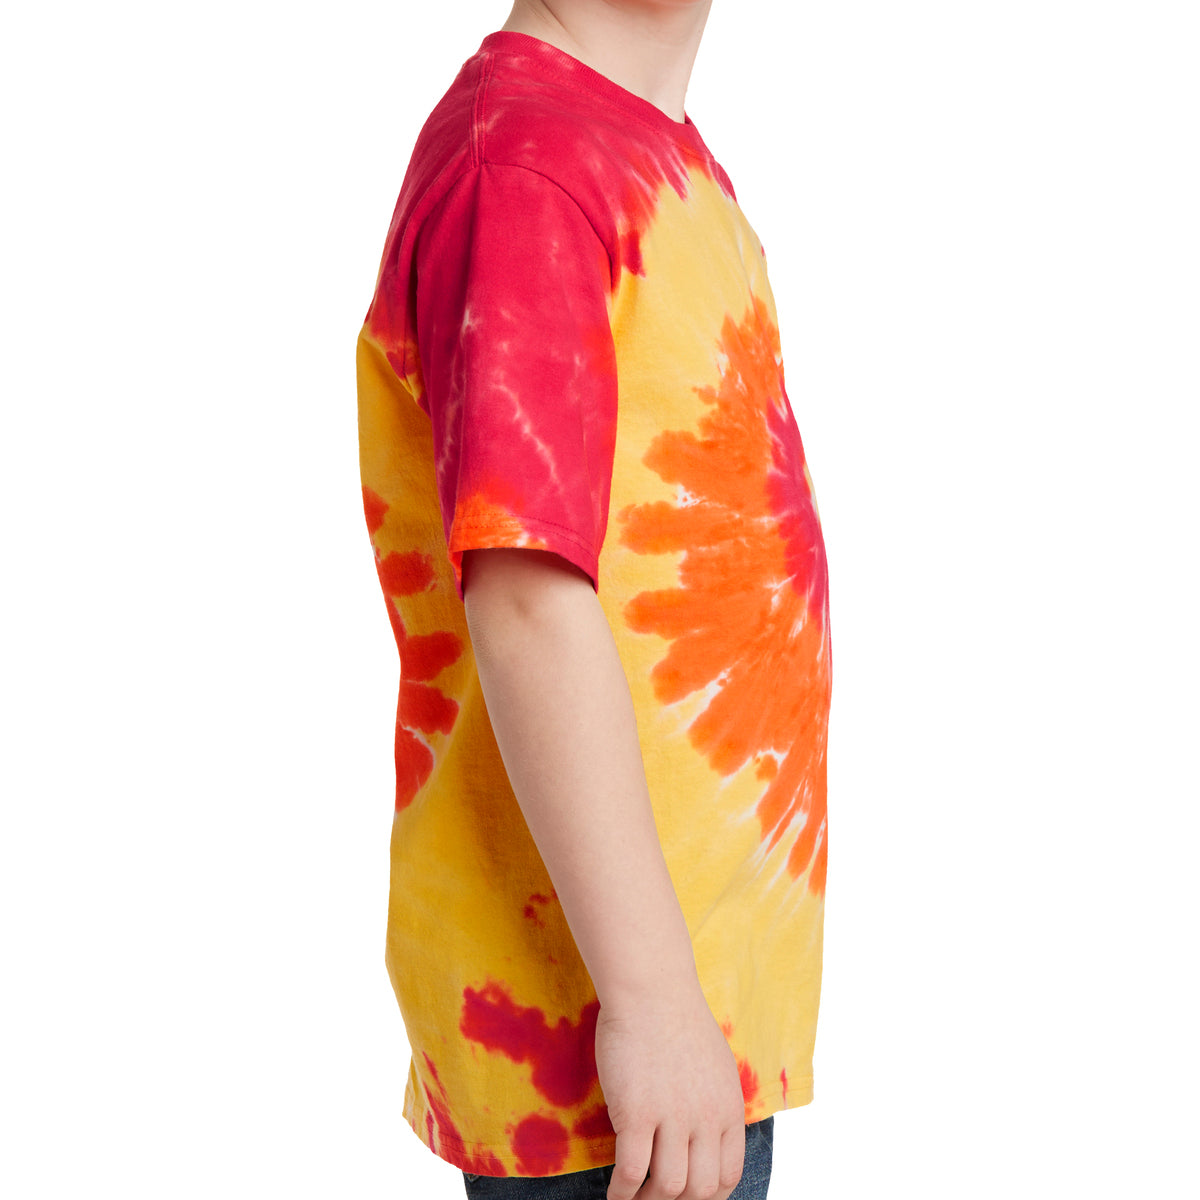 Youth Tie-Dye Tee - Blaze Rainbow